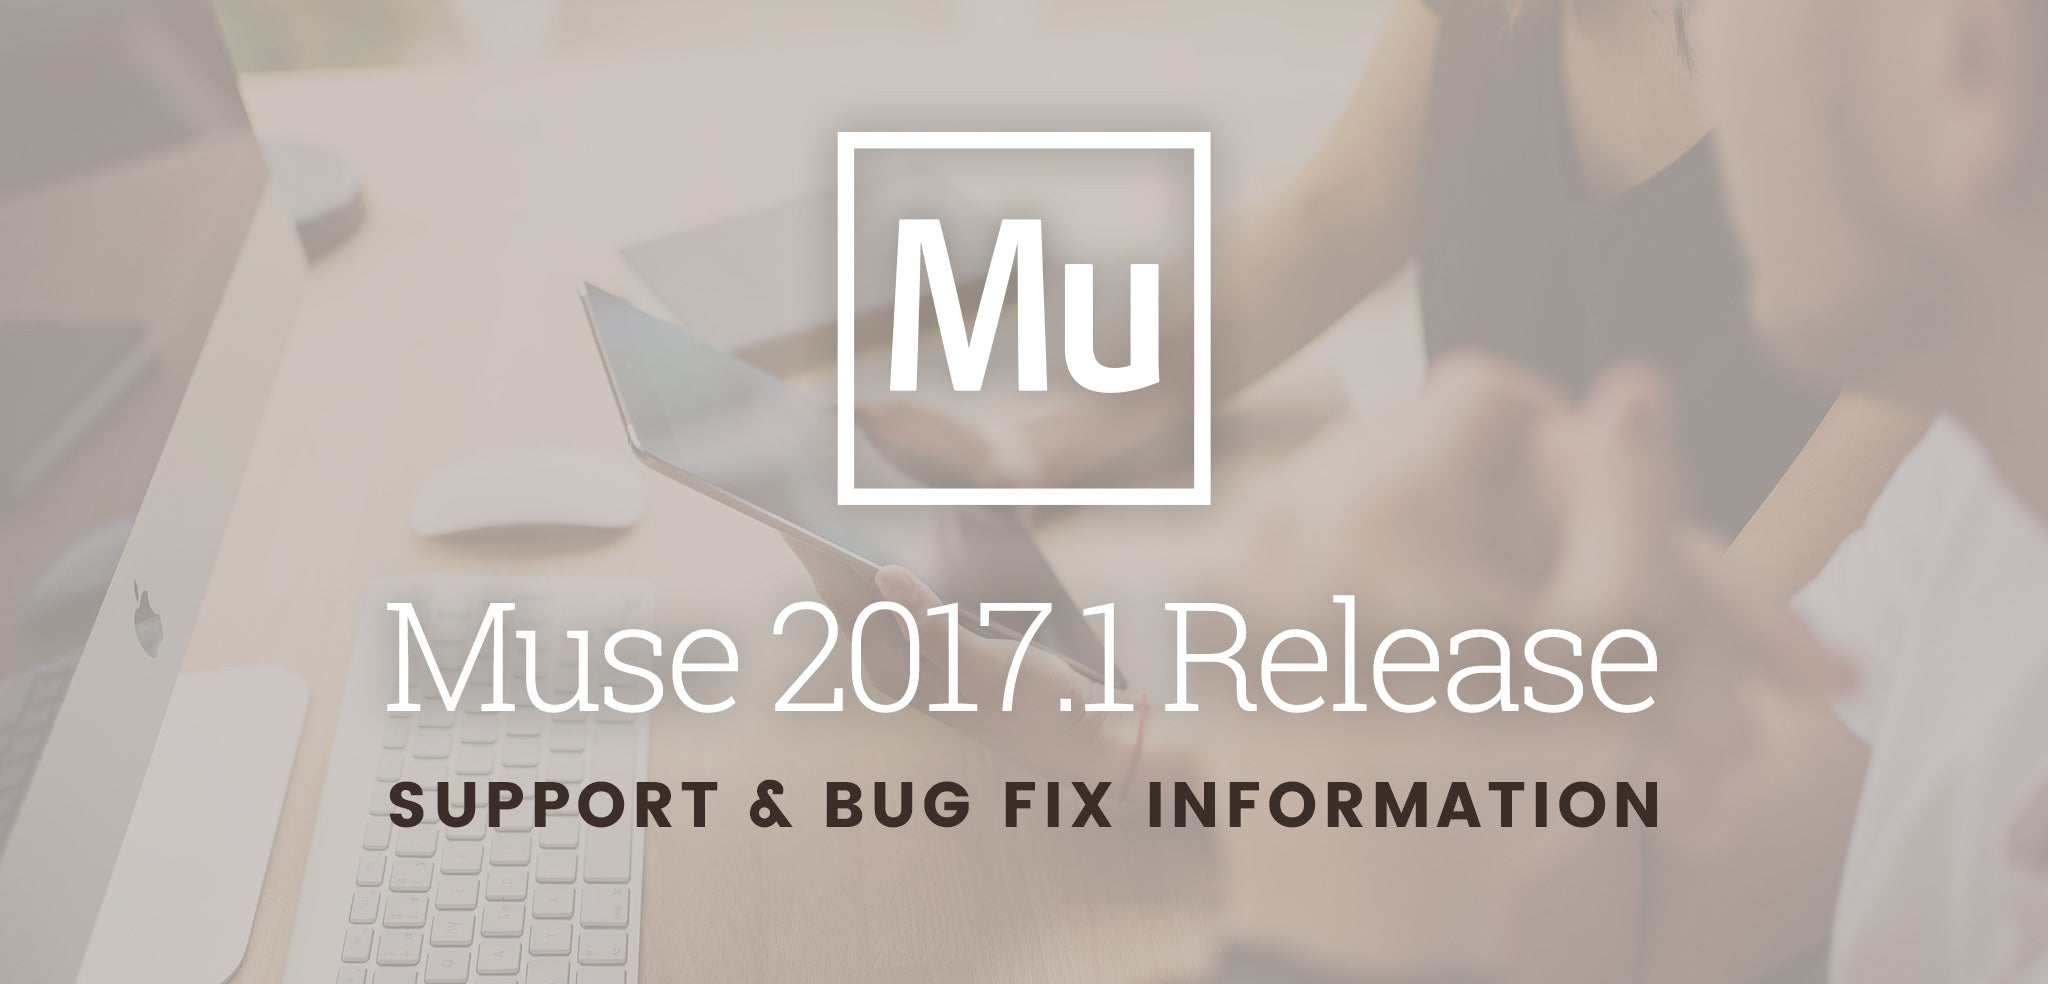 Muse 2017.1 Support & Bug Information